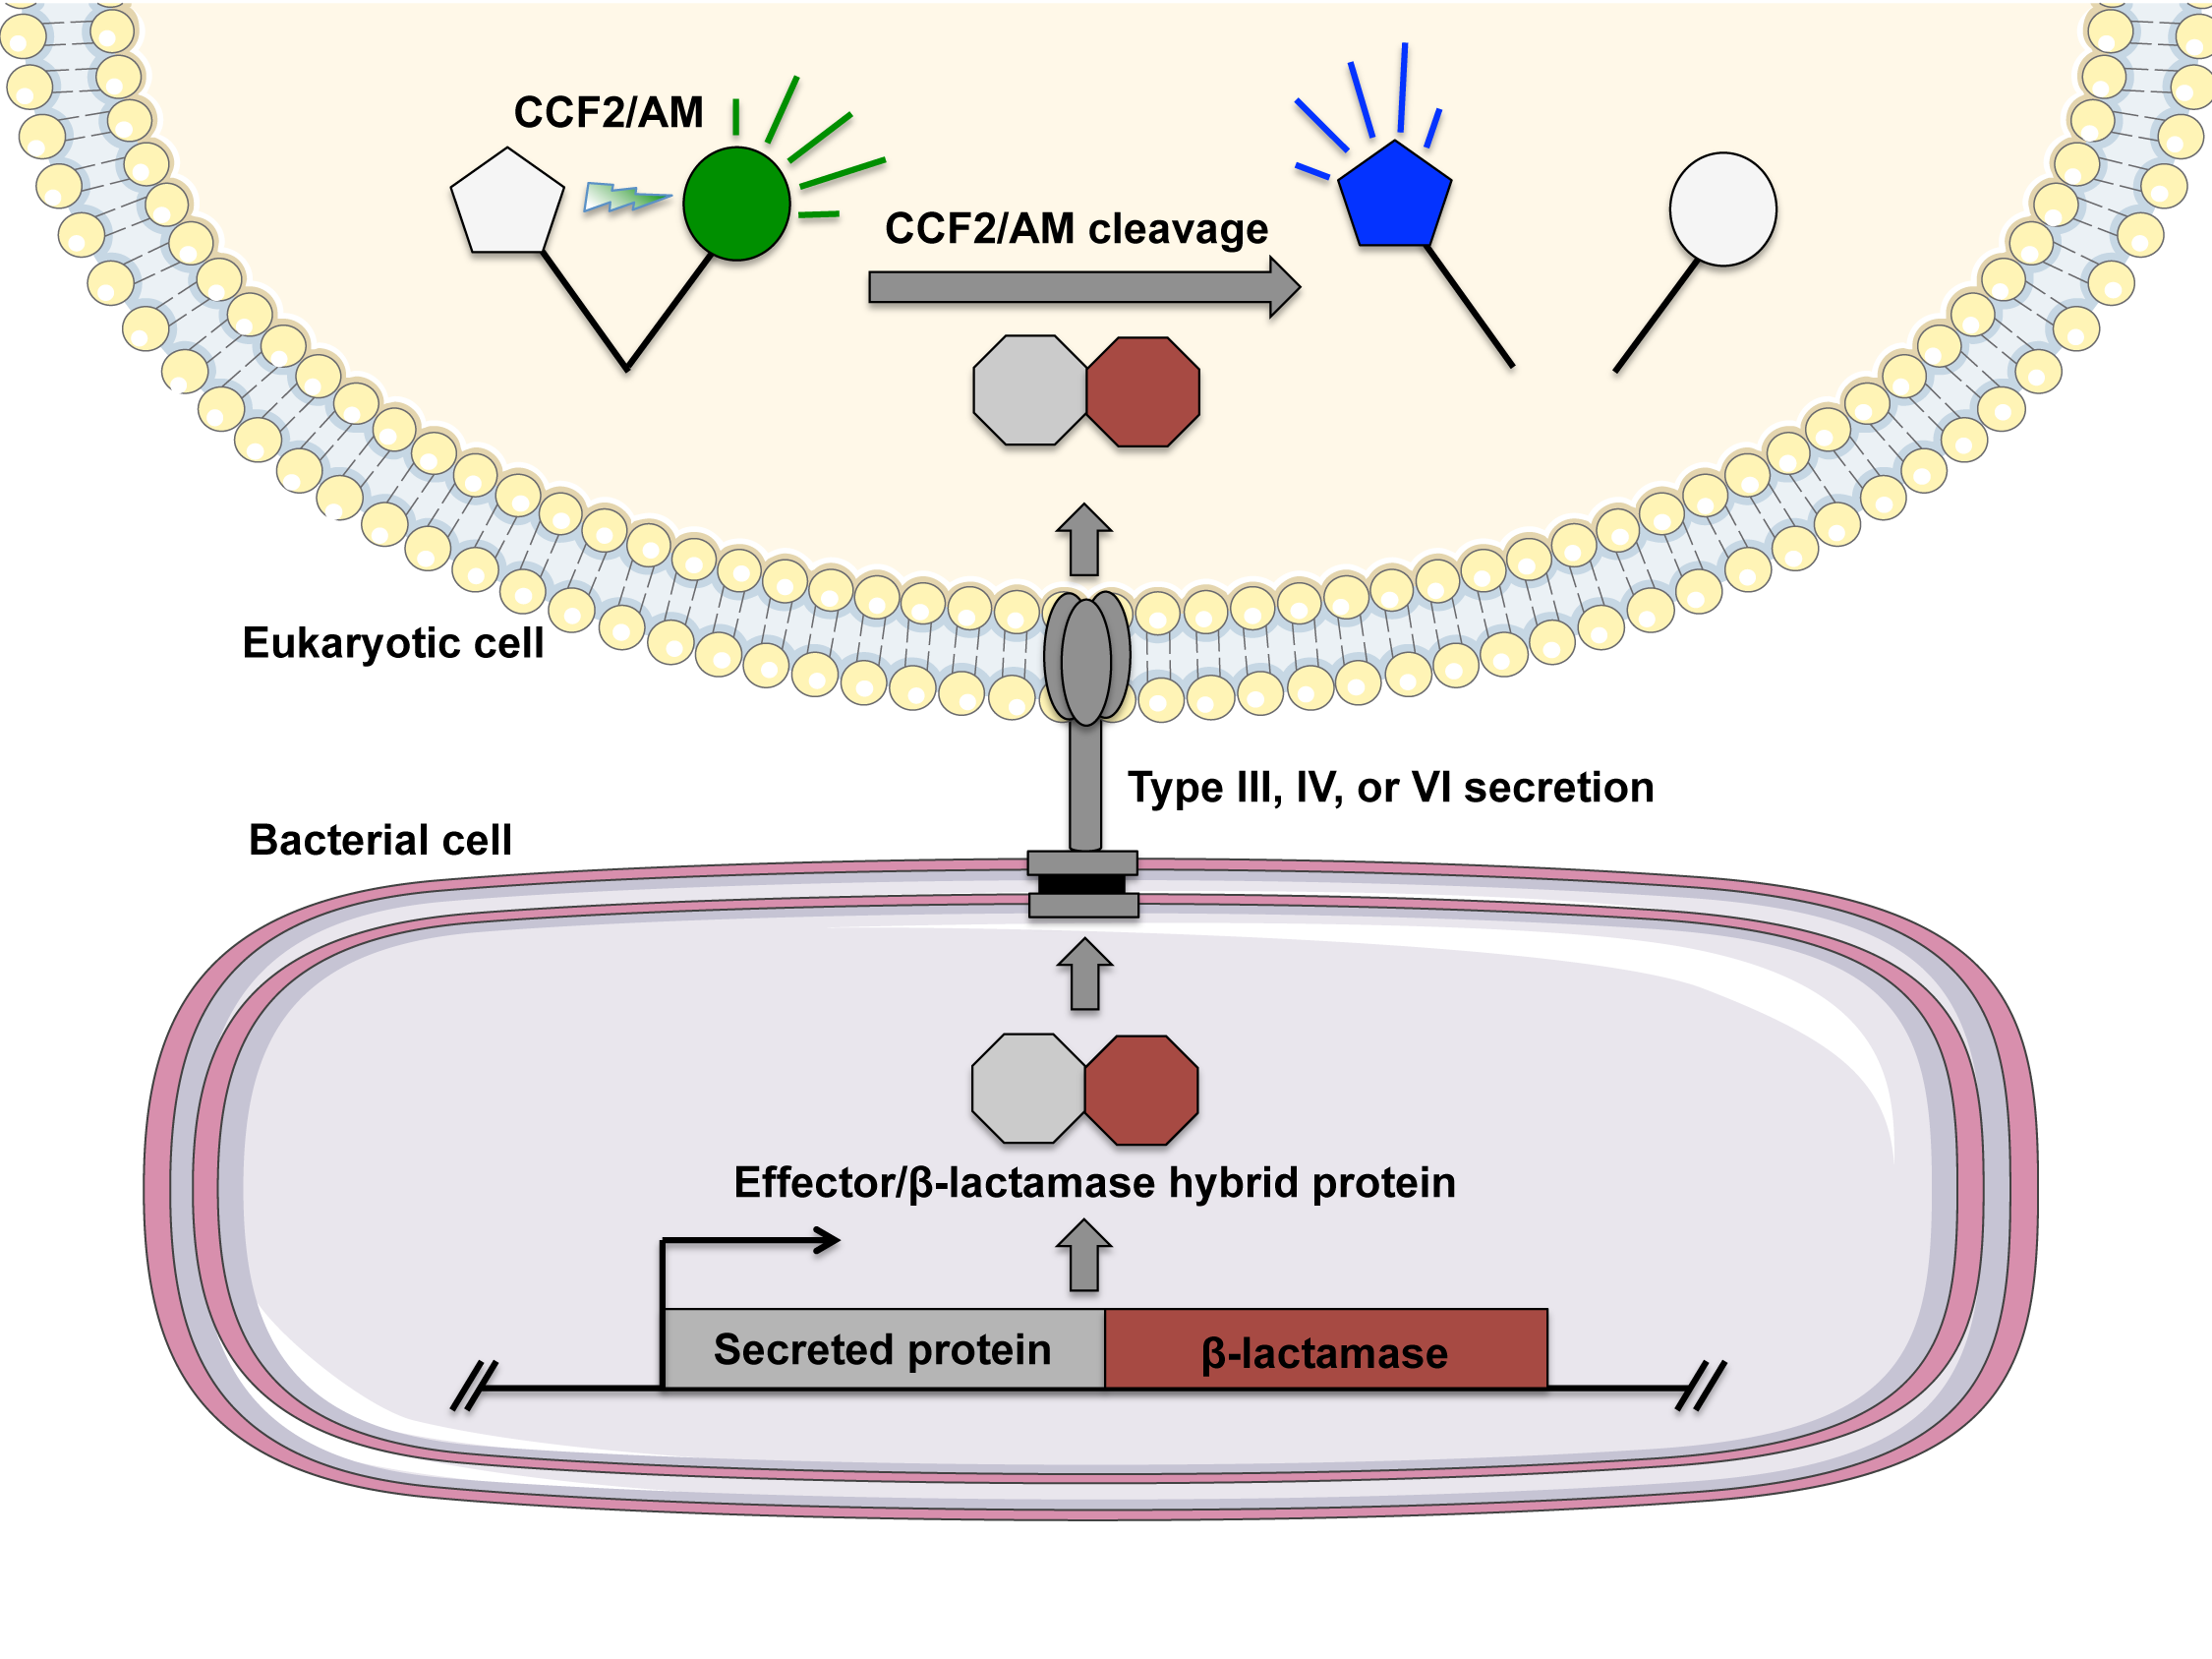 Evaluating bacterial secretion using the FRET-based substrate CCF2/AM.